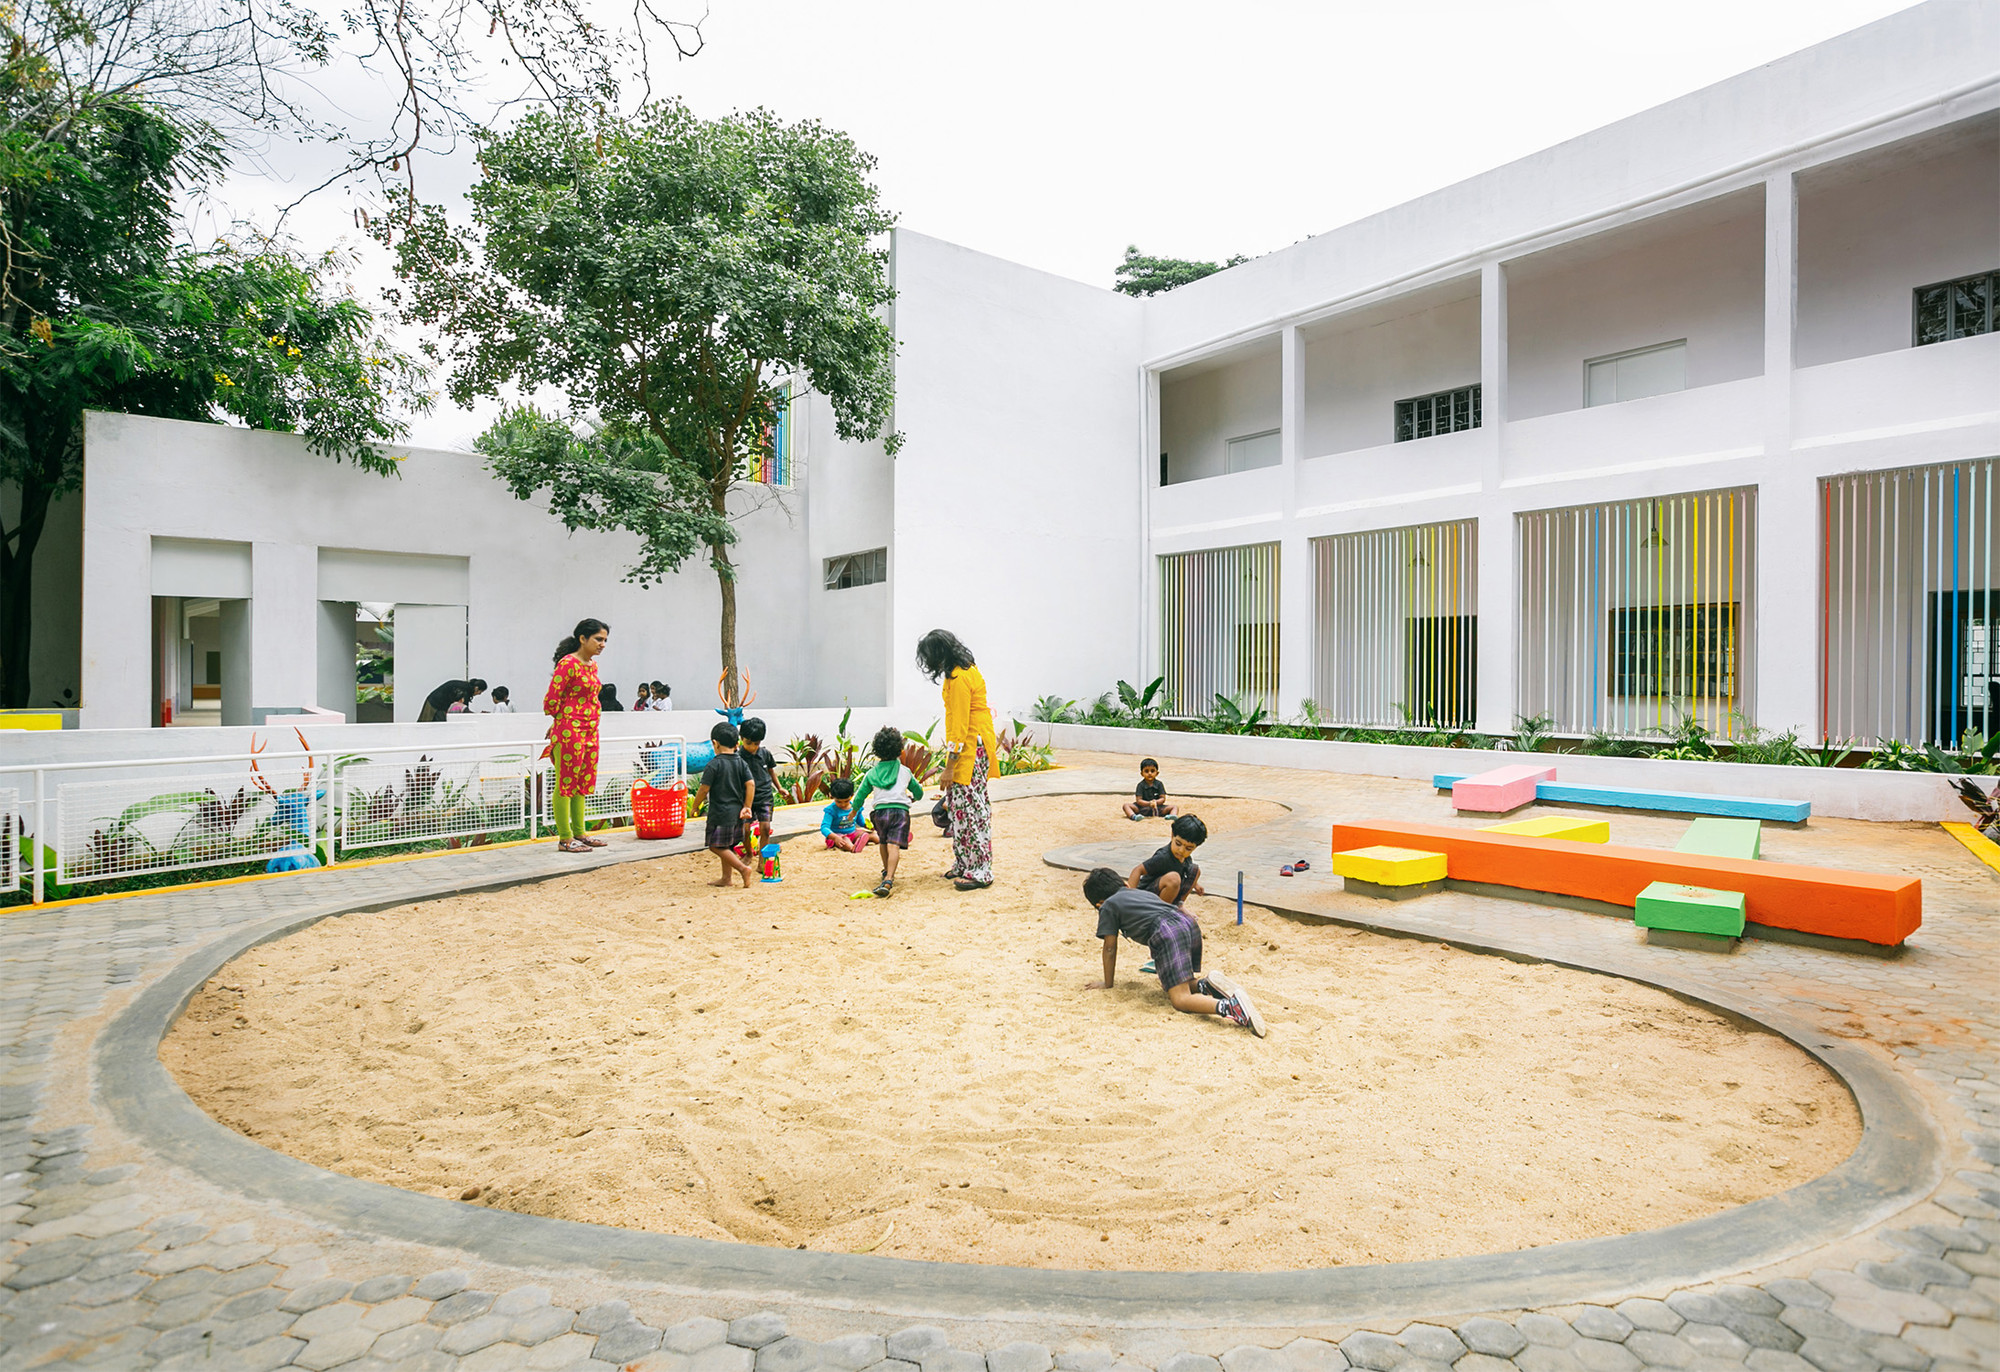 Ekya Early Years Kanakapura Road / CollectiveProject, © Tina Nandi Stephens